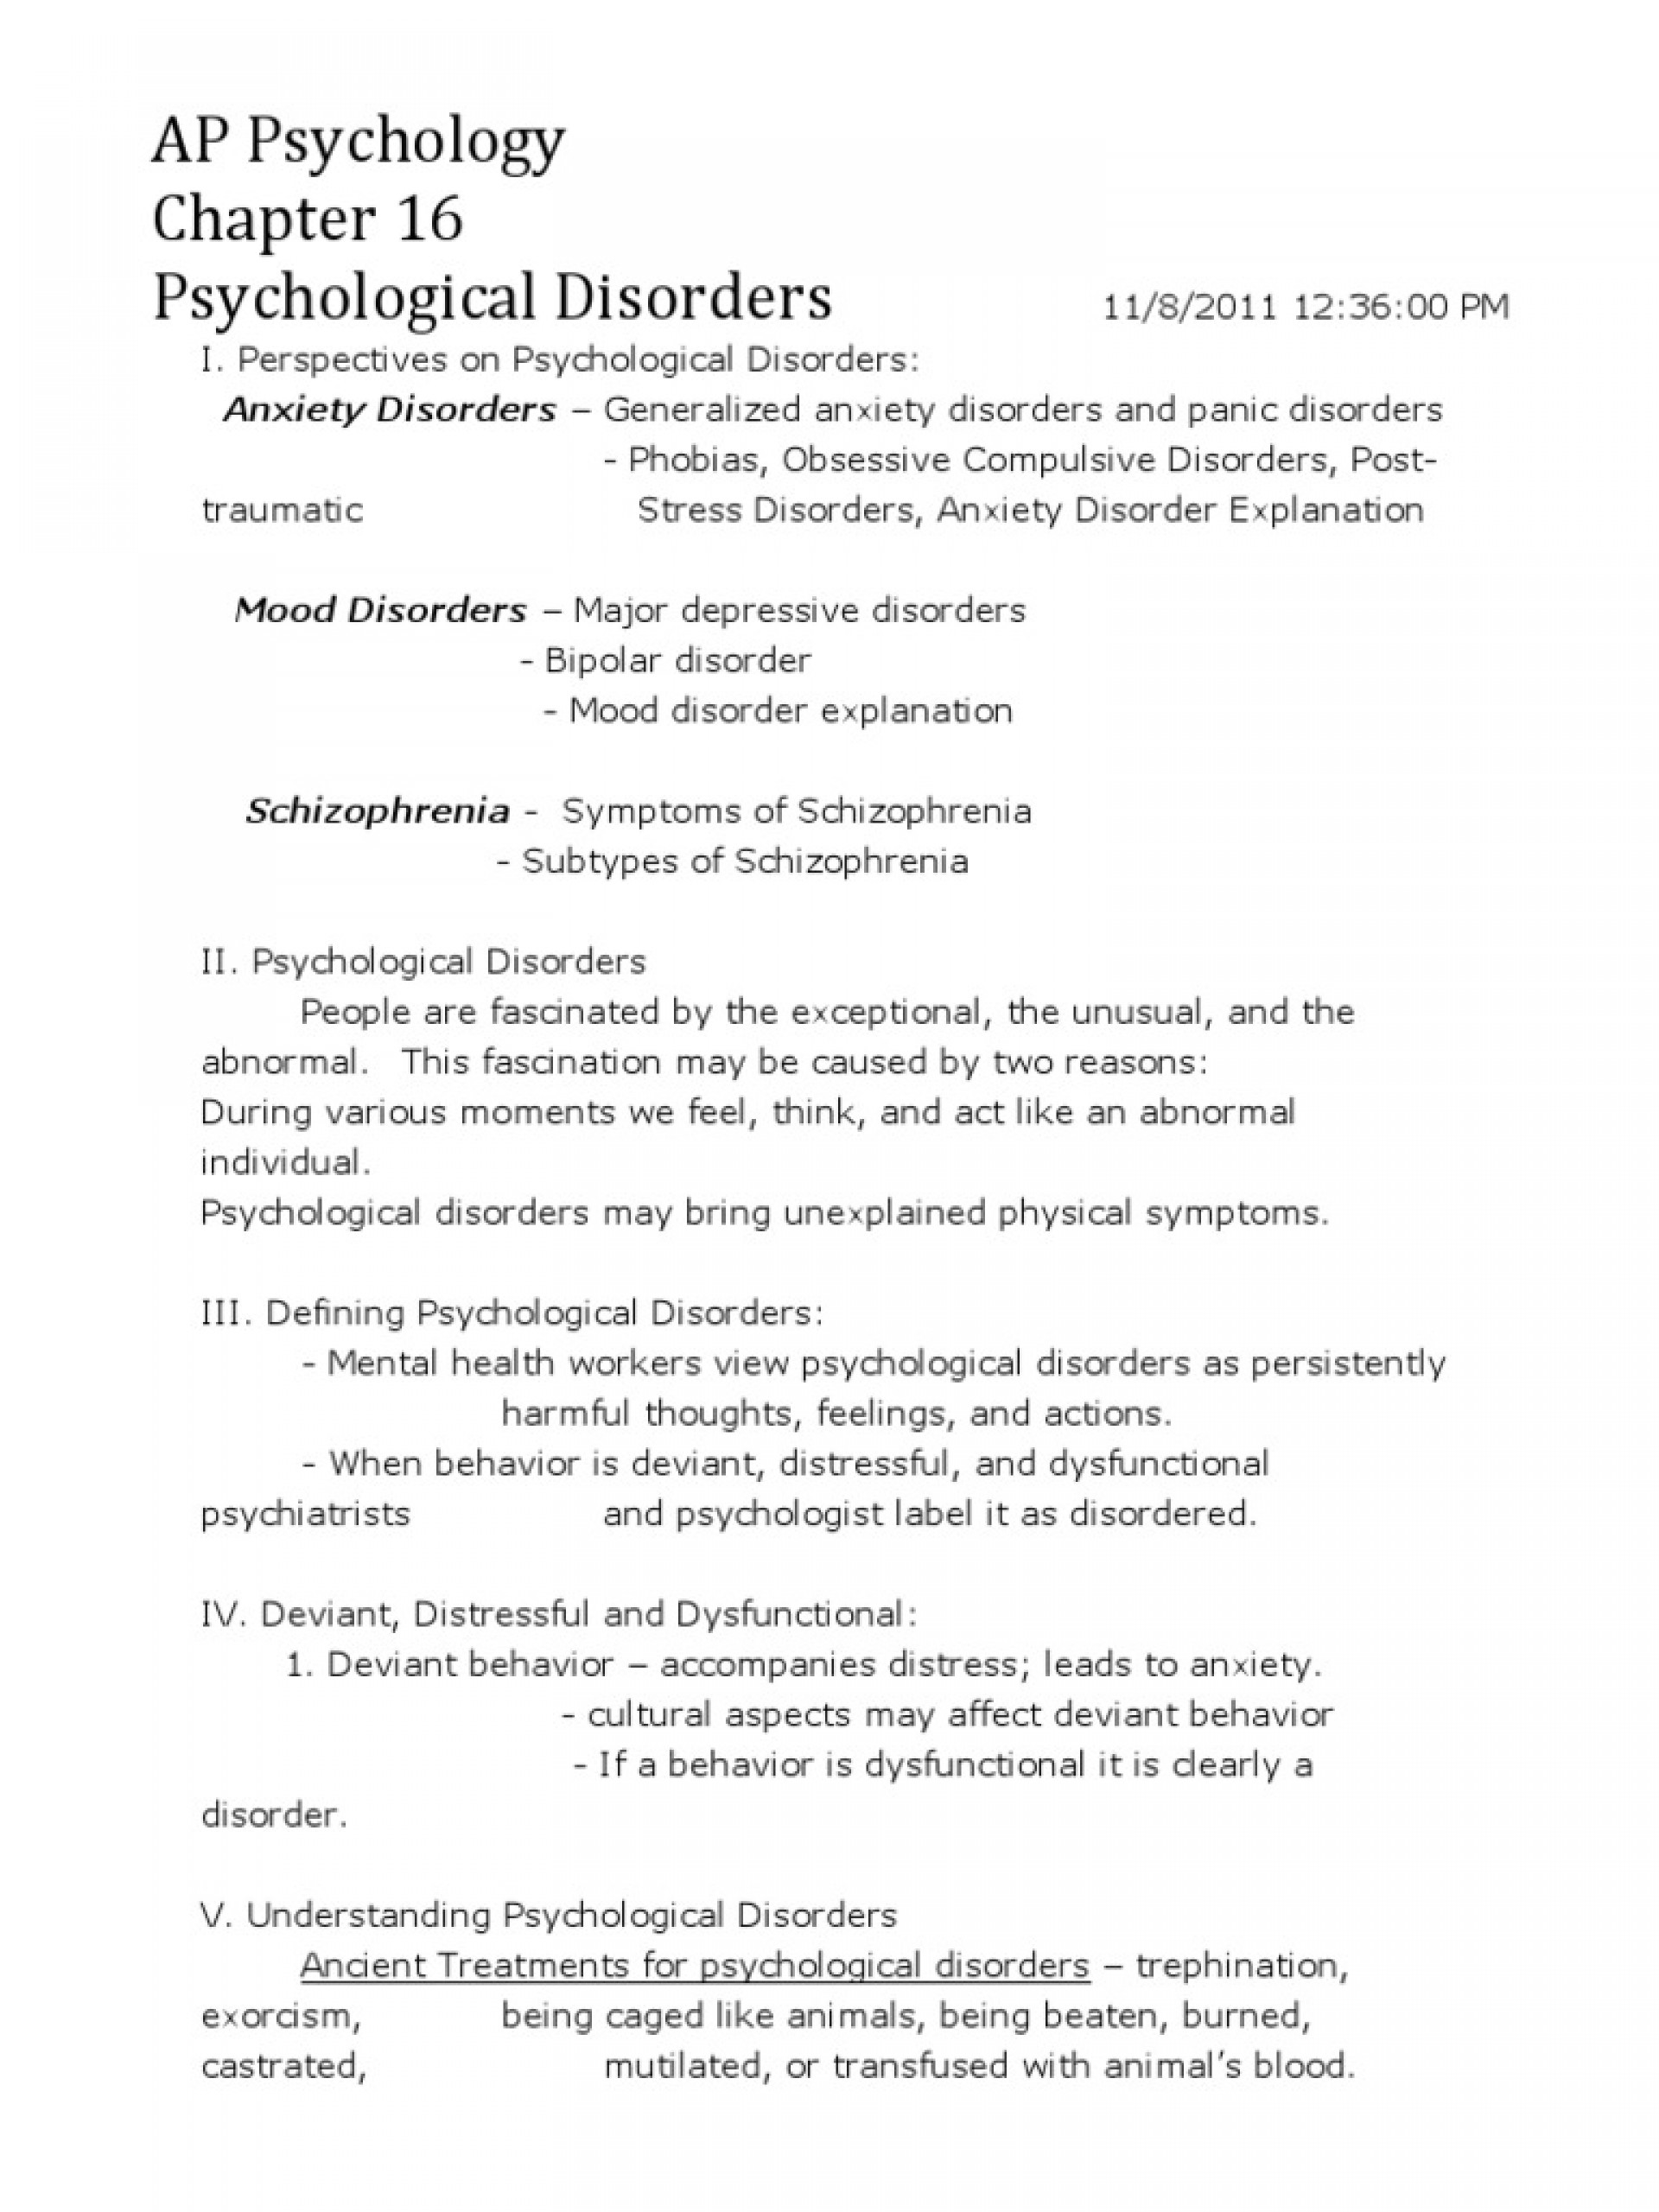 018 Diabetes Research Paper Outline Bipolar Disorder Essay Topics Title Pdf College Introduction Question Conclusion Stirring Sample For Type 2 1920